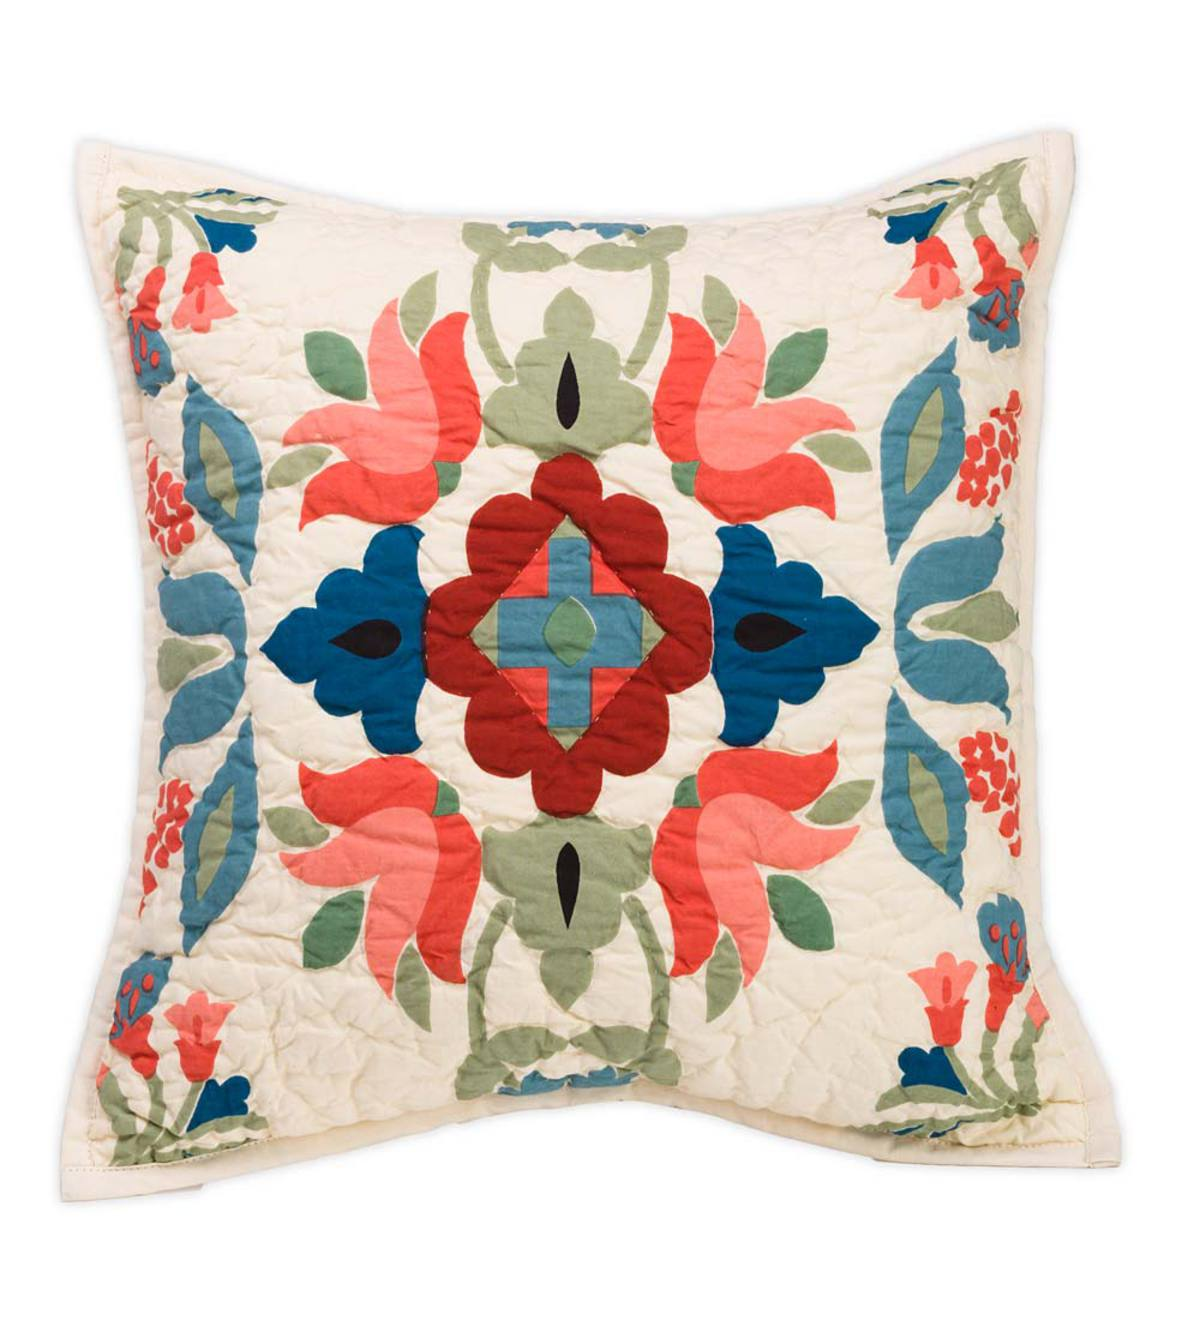 Ansley Folk Art Throw Pillow in Cream - Cream